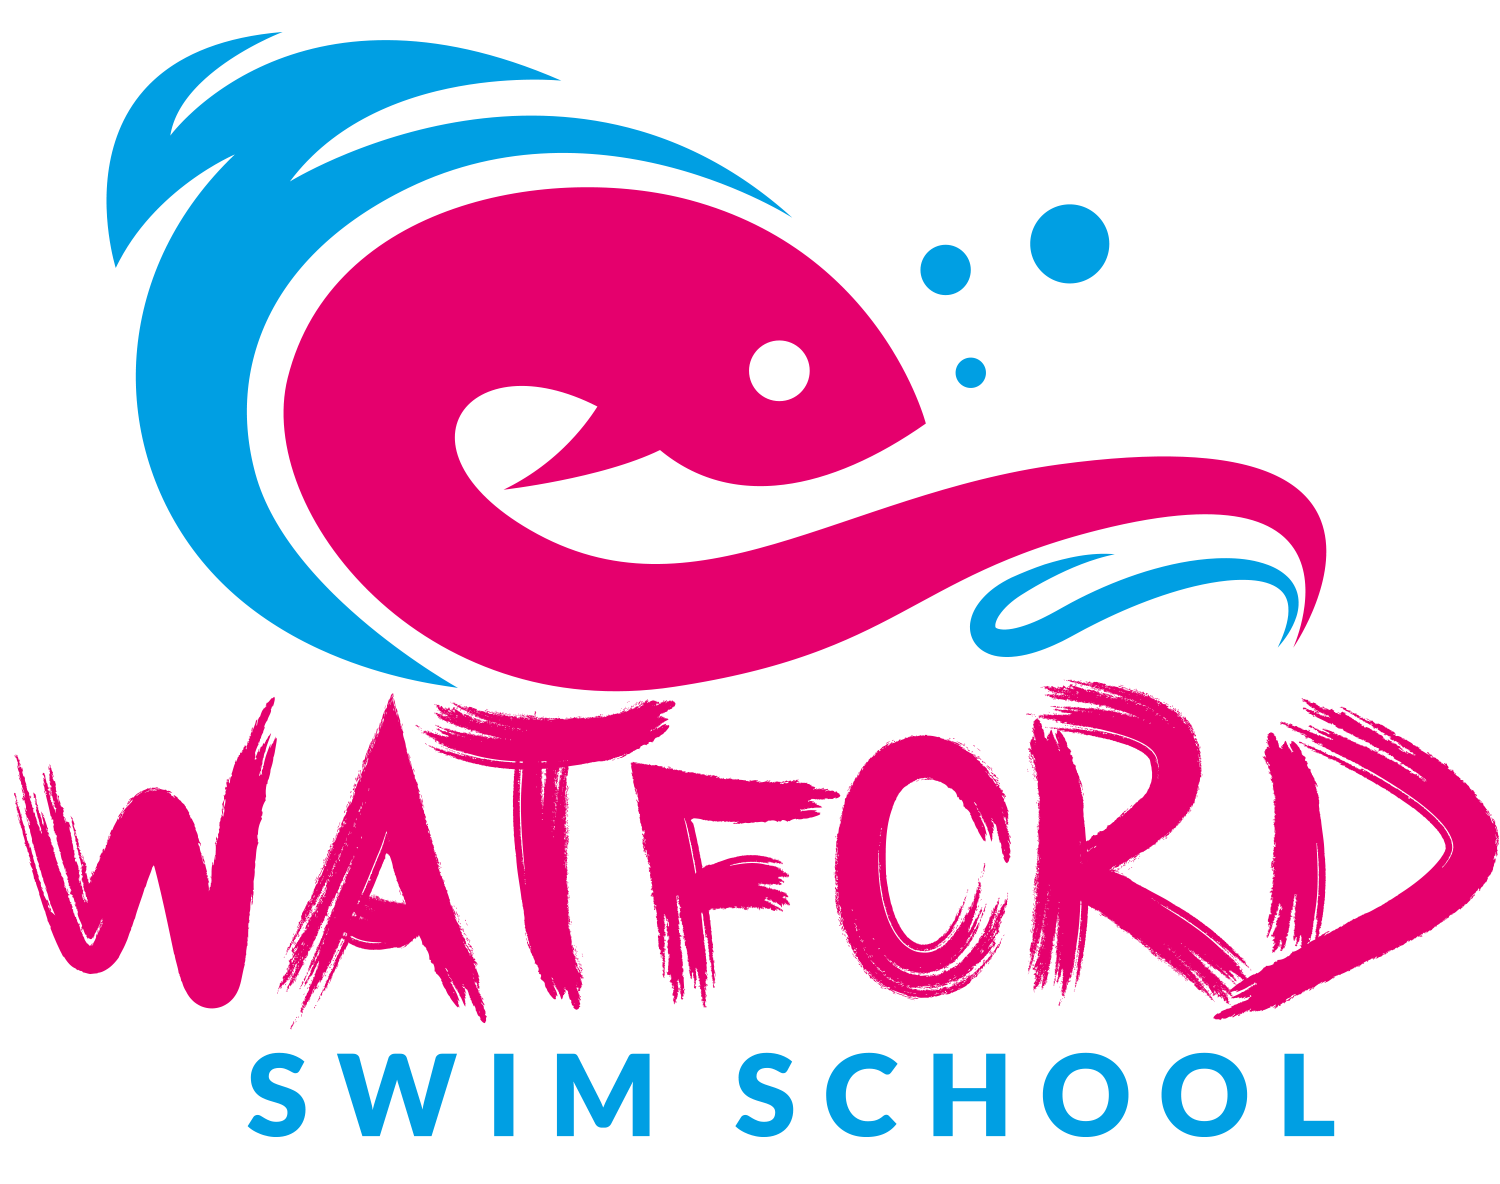 Watford Swim School